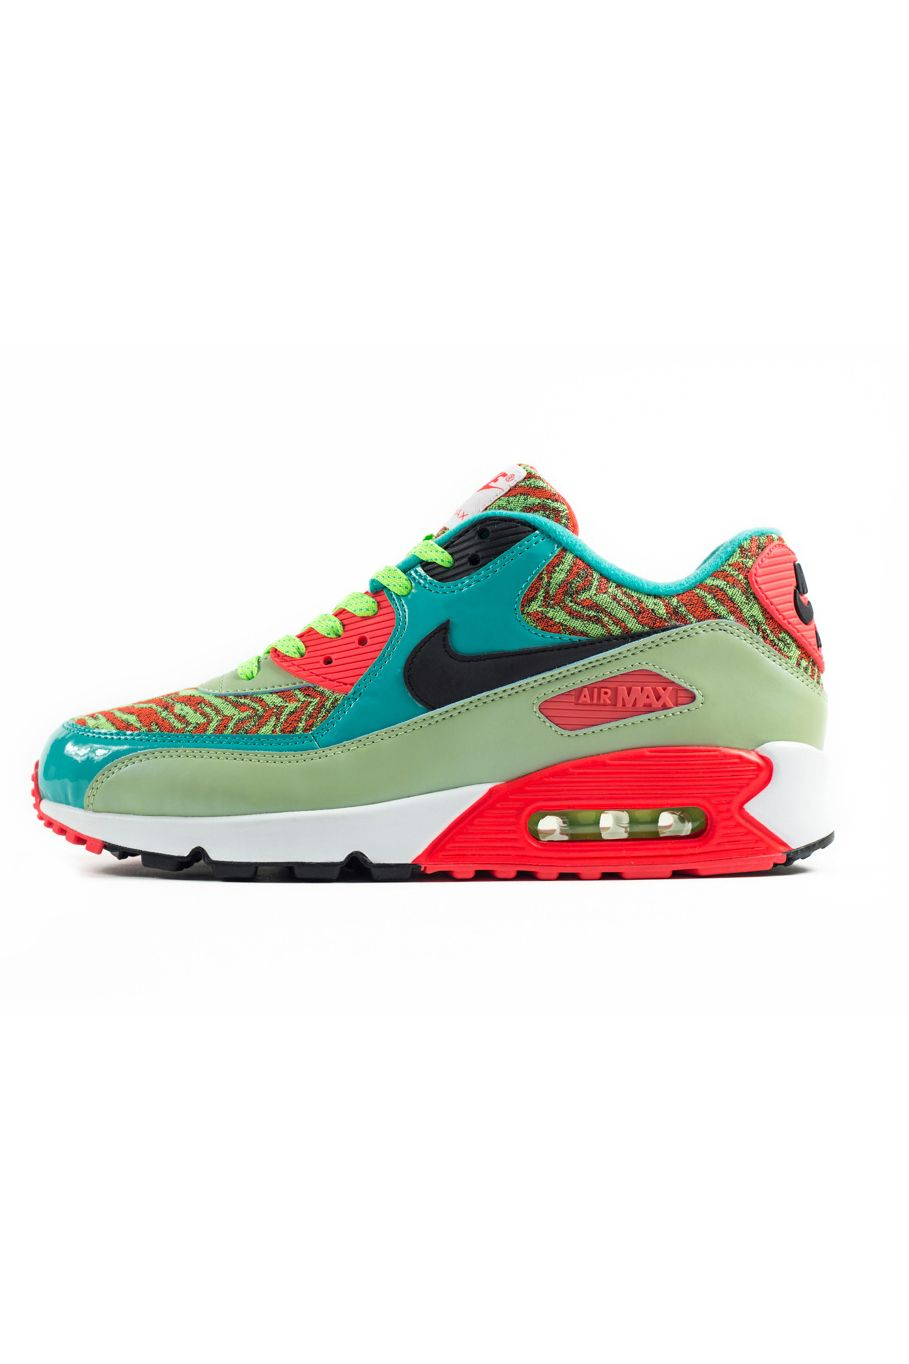 new style 6b424 6cf11 Ranking Nike s Air Max 90 25th Anniversary Pack